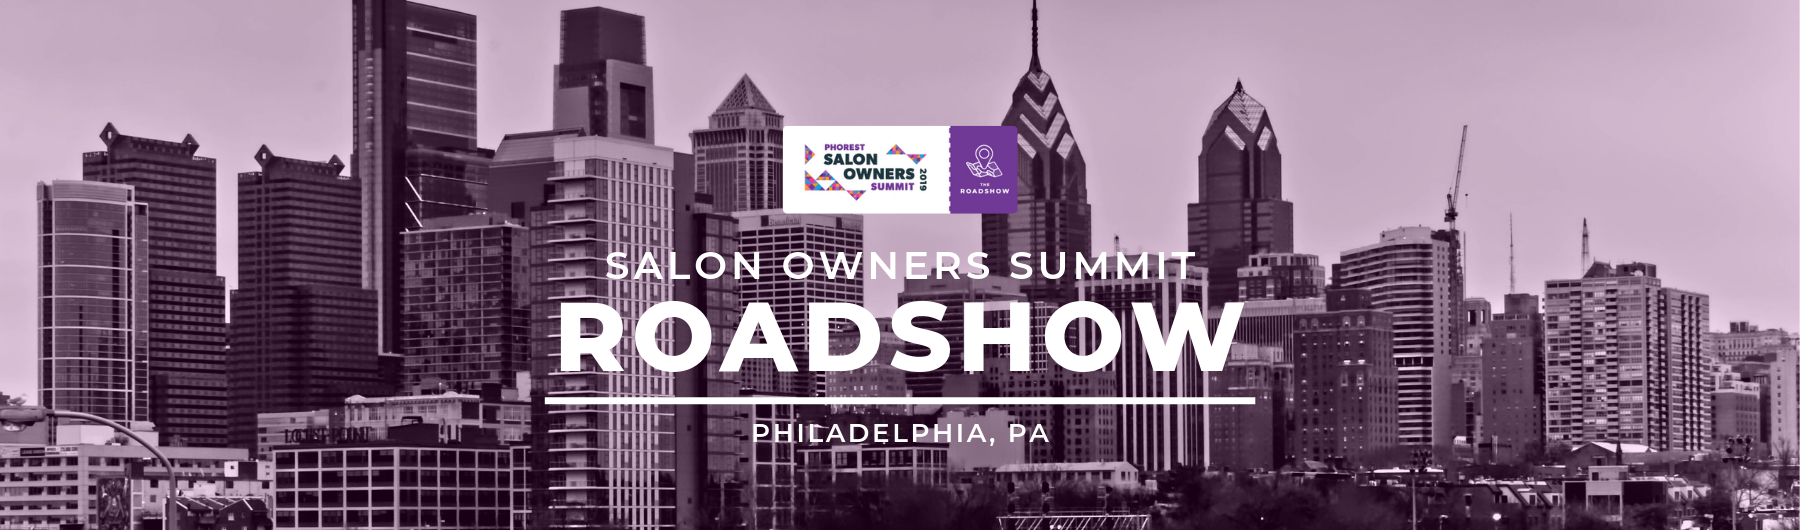 Salon Owners Summit Roadshow, Philadelphia